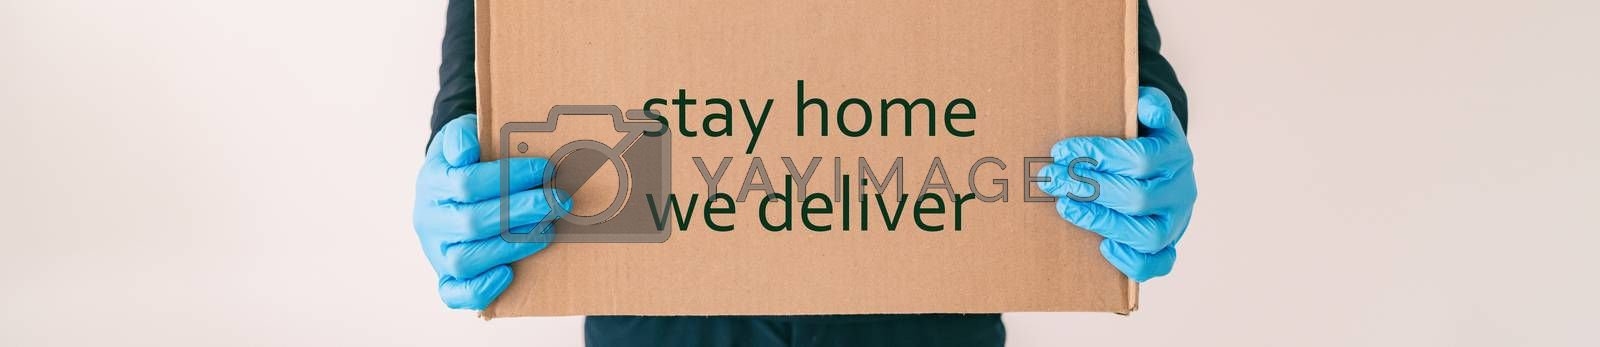 Home delivery with quote STAY HOME WE DELIVER on cardboard box banner. Food grocery delivered with gloves for COVID-19 quarantine from coronavirus social distancing. man giving purchase by Maridav